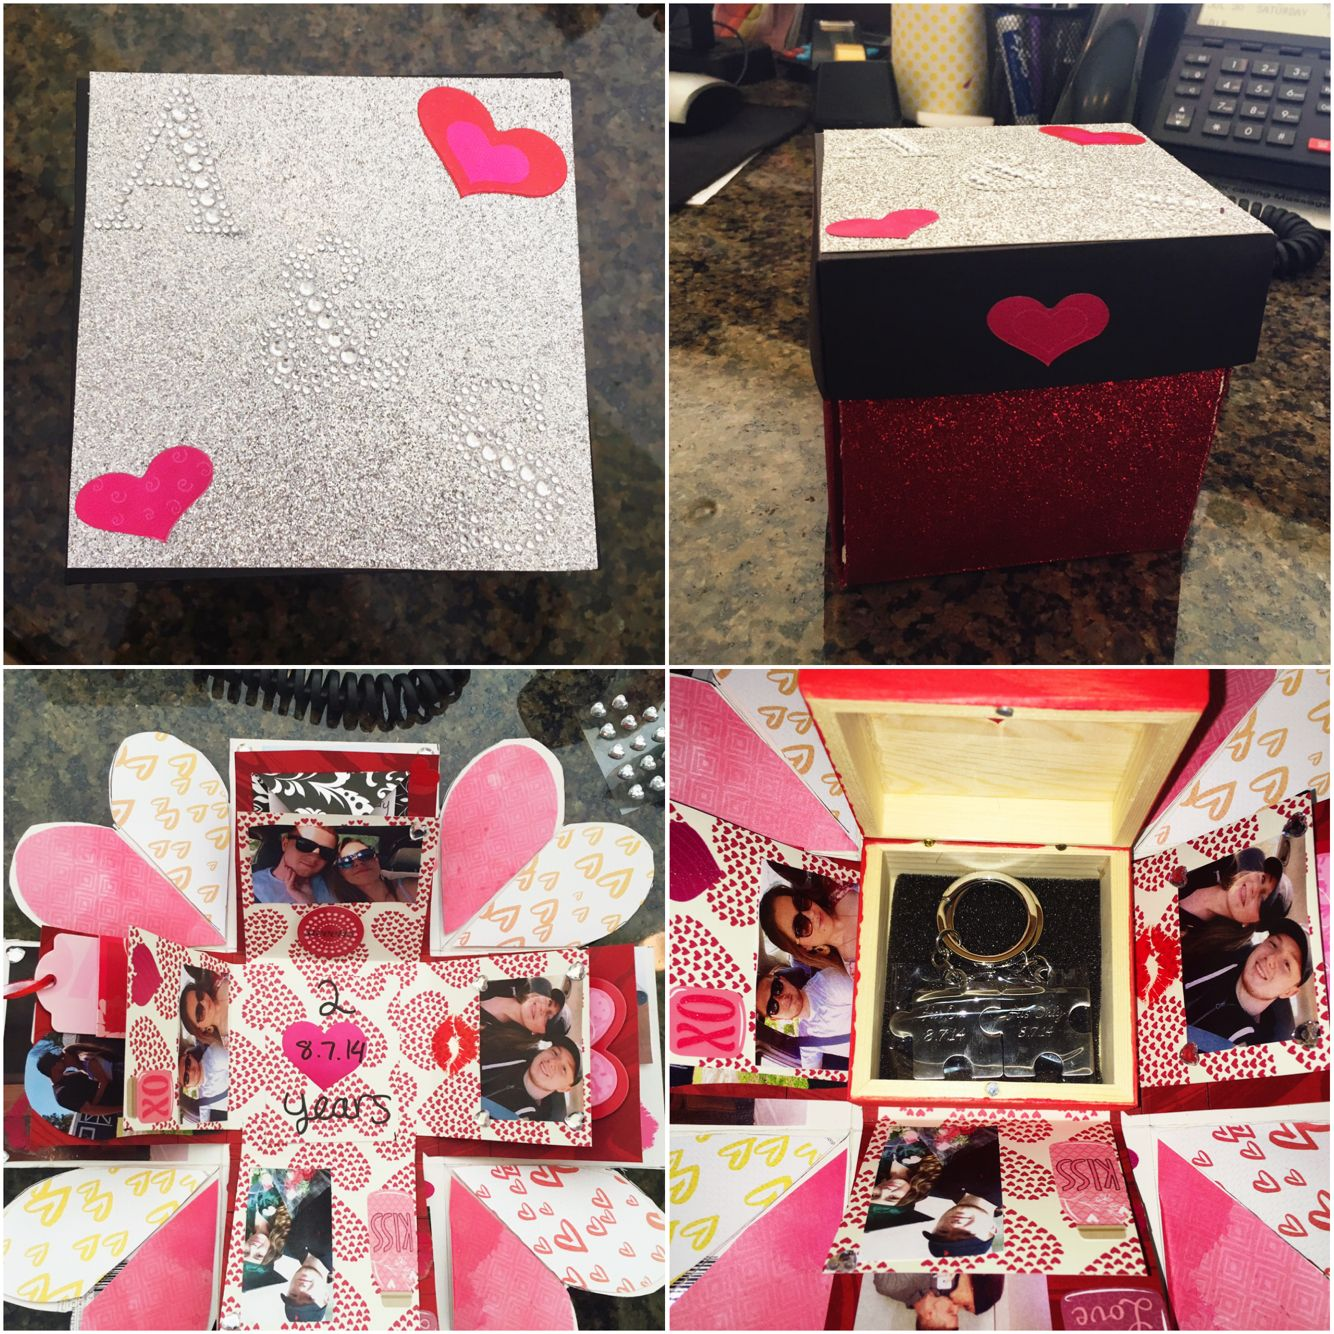 Diy mini album scrapbook for boyfriend 2014 youtube - Exploding Box I Made For My Boyfriend For Our 2 Years Together Anniversary